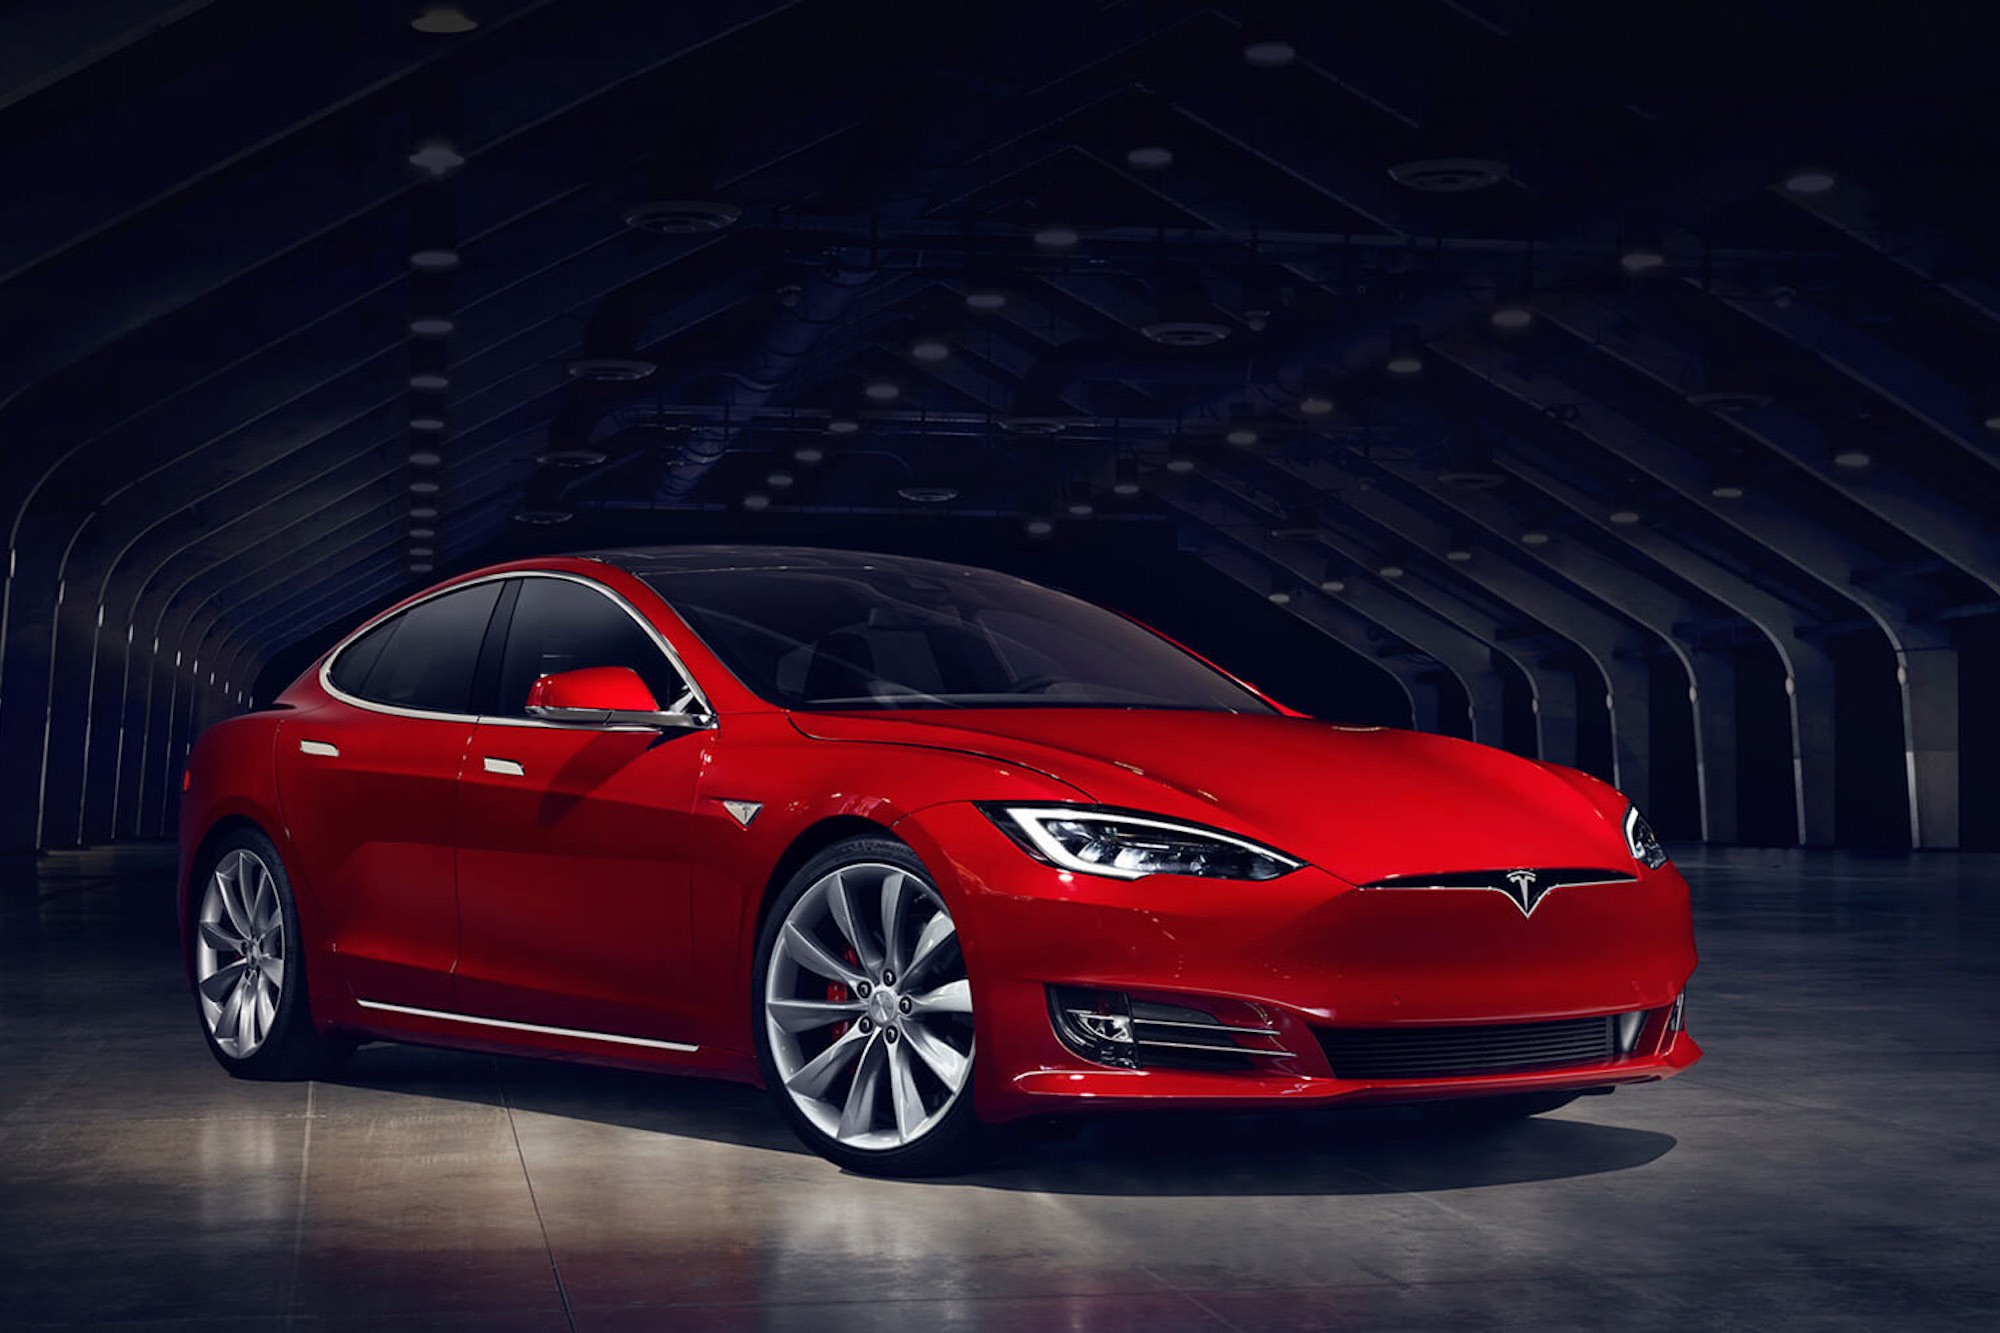 Tesla Model S facelift with new front fascia